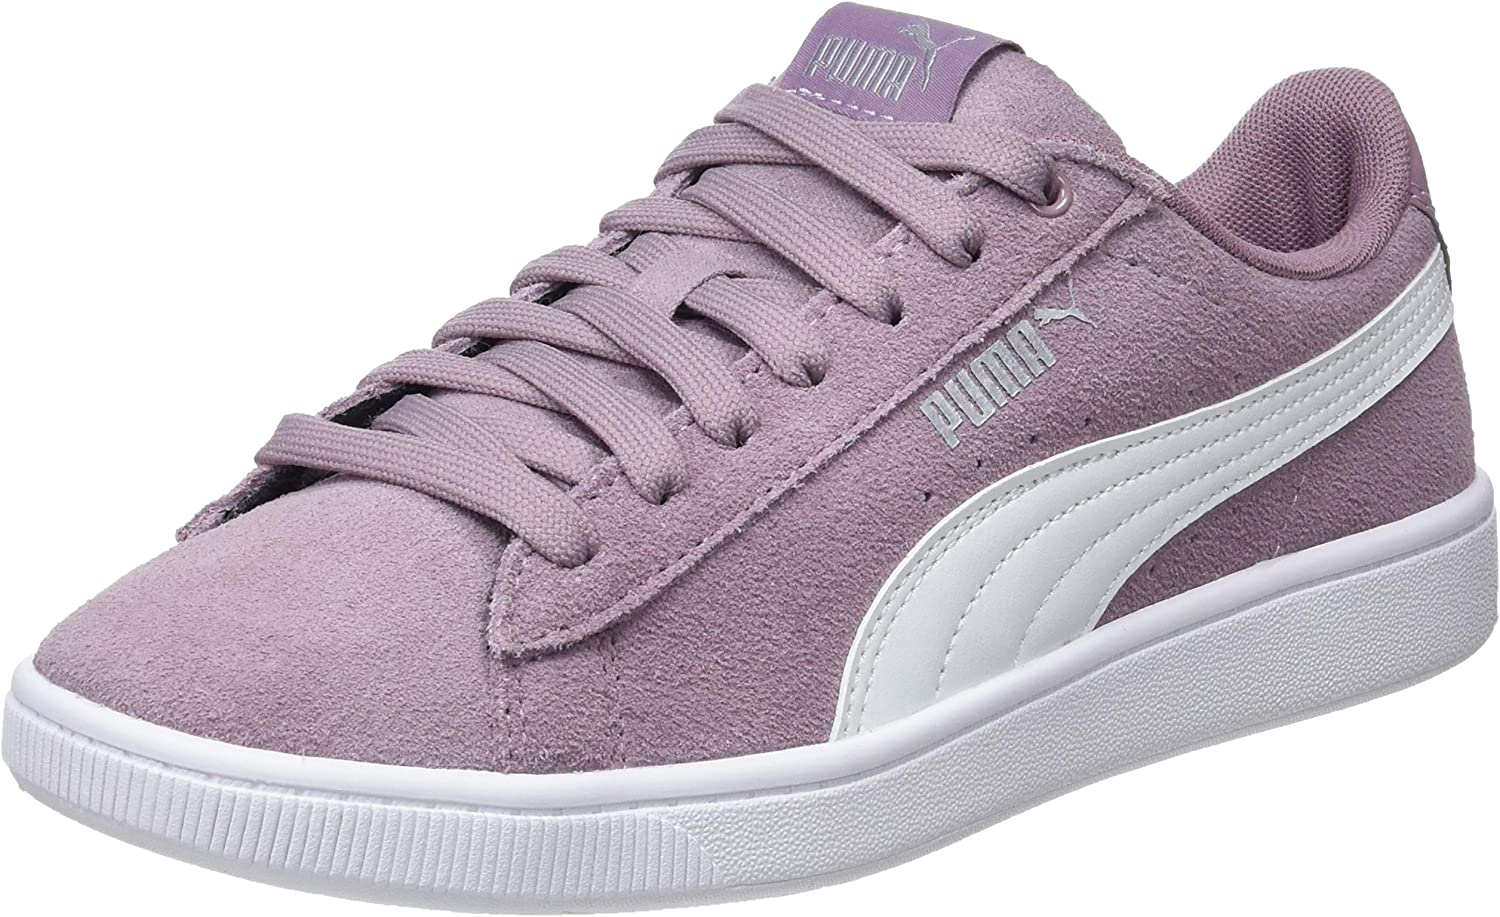 PUMA Women's Vikky V2 Low-Top Sneakers